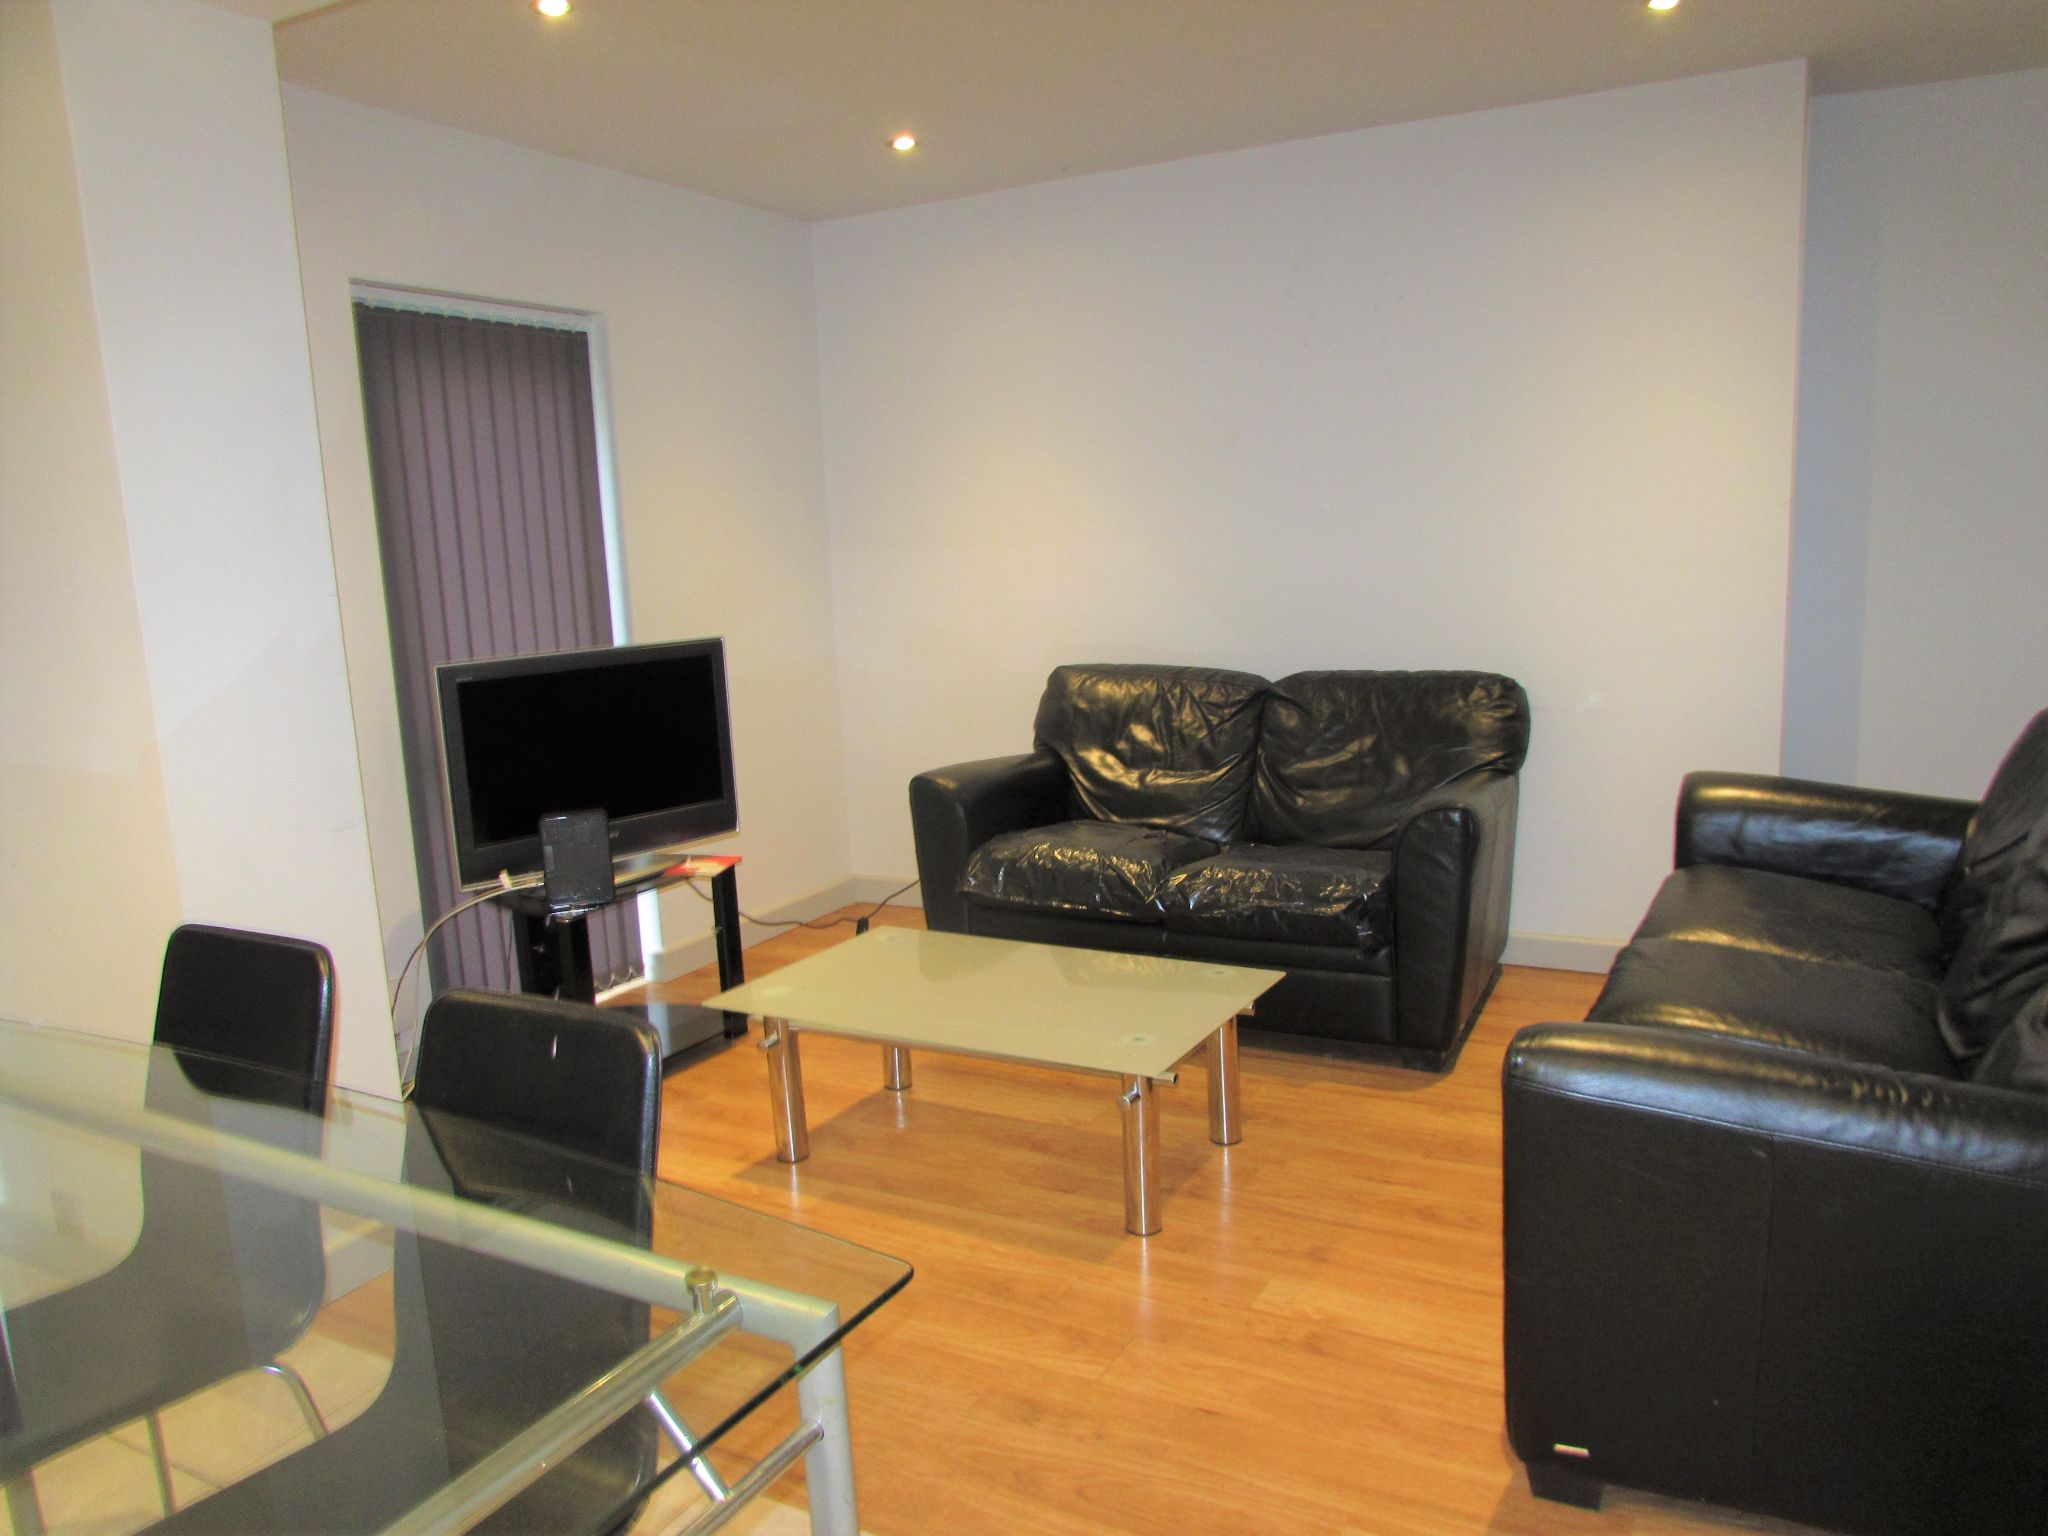 1 Bedroom Shared House To Rent - Photograph 1